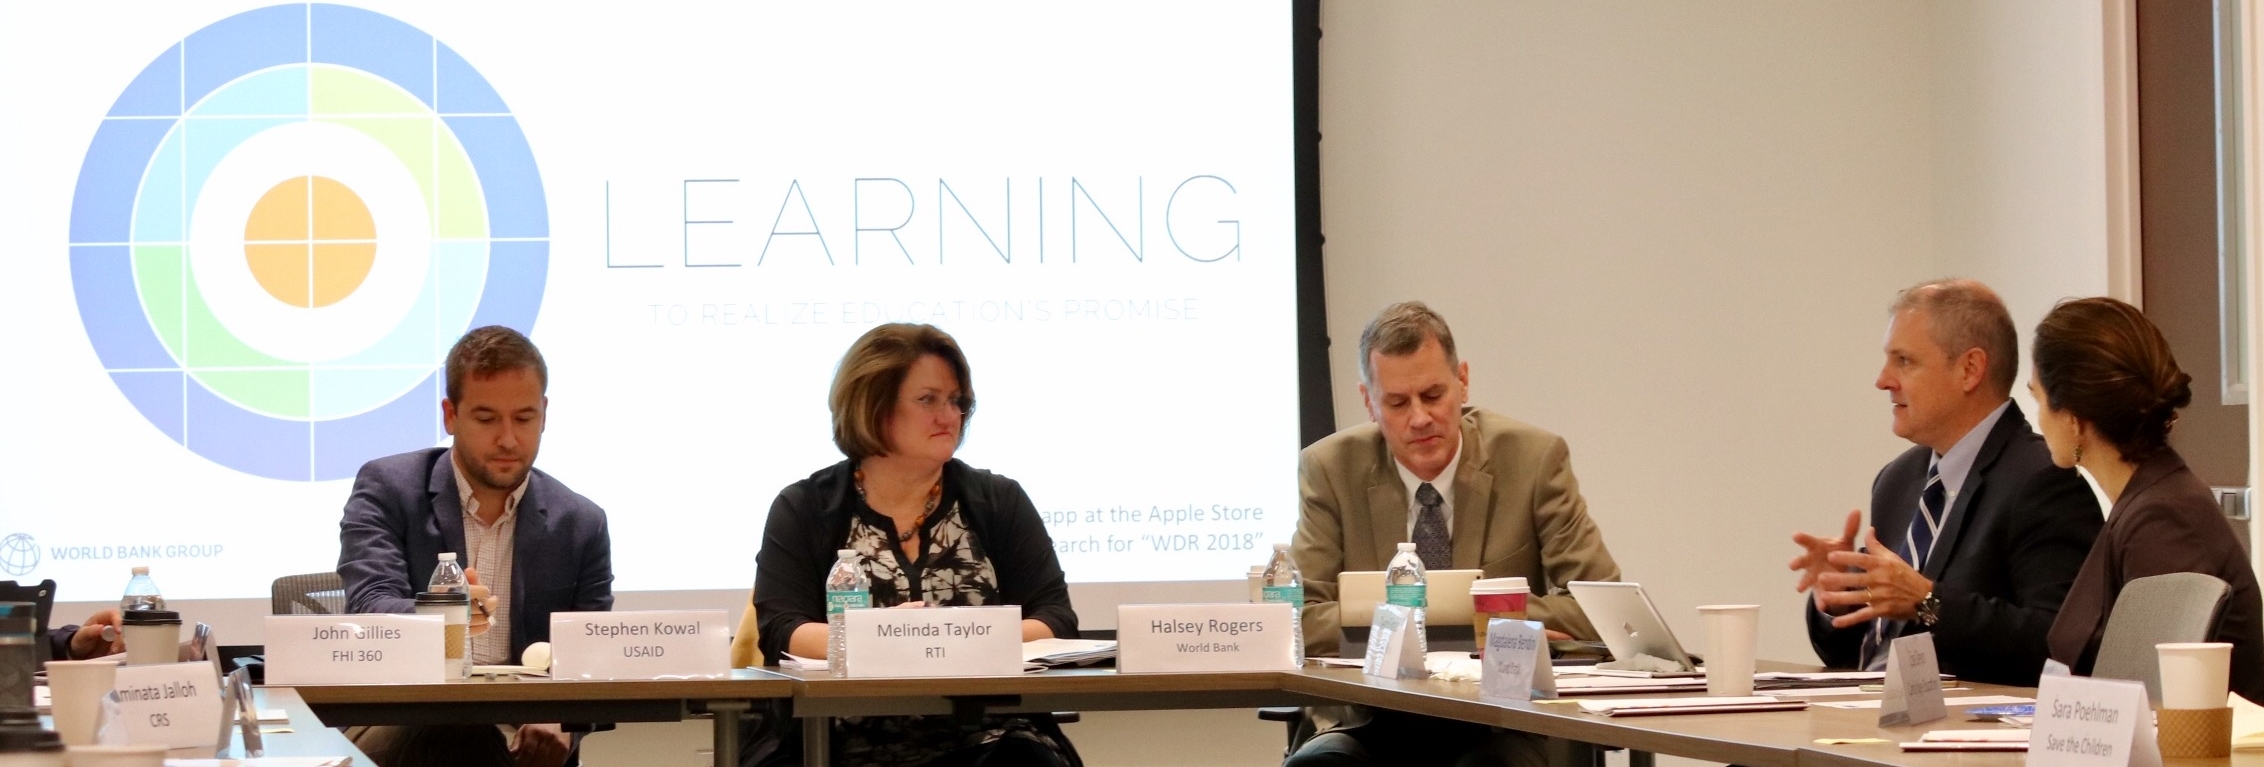 Steve Kowal (USAID), Melinda Taylor (RTI), Halsey Rogers (World Bank), Deon Filmer (World Bank) and Magdalena Bendini (World Bank) reflect on recommendations from the WDR18 at the launch hosted at BEC on 10/24/17